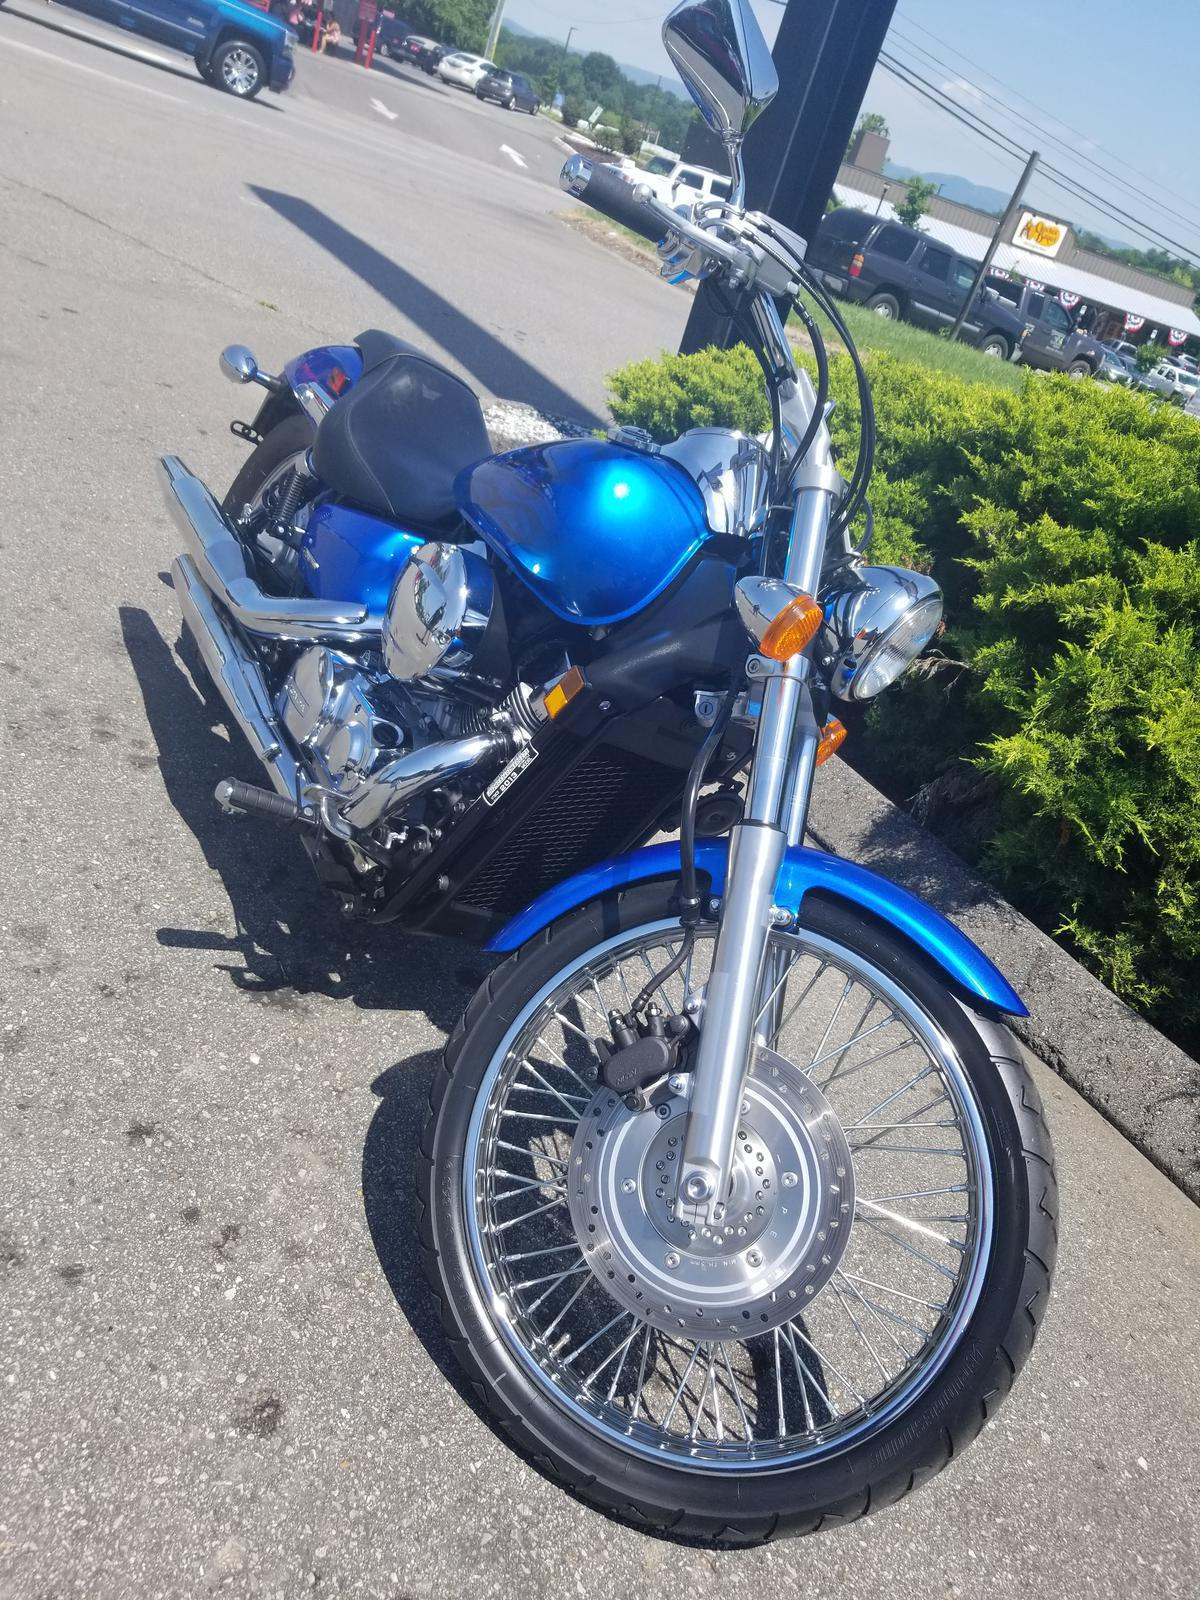 2013 Honda Shadow Spirit 750 Ultra Blue Metallic Flame For Sale In Fuel Filter 20180601 114957